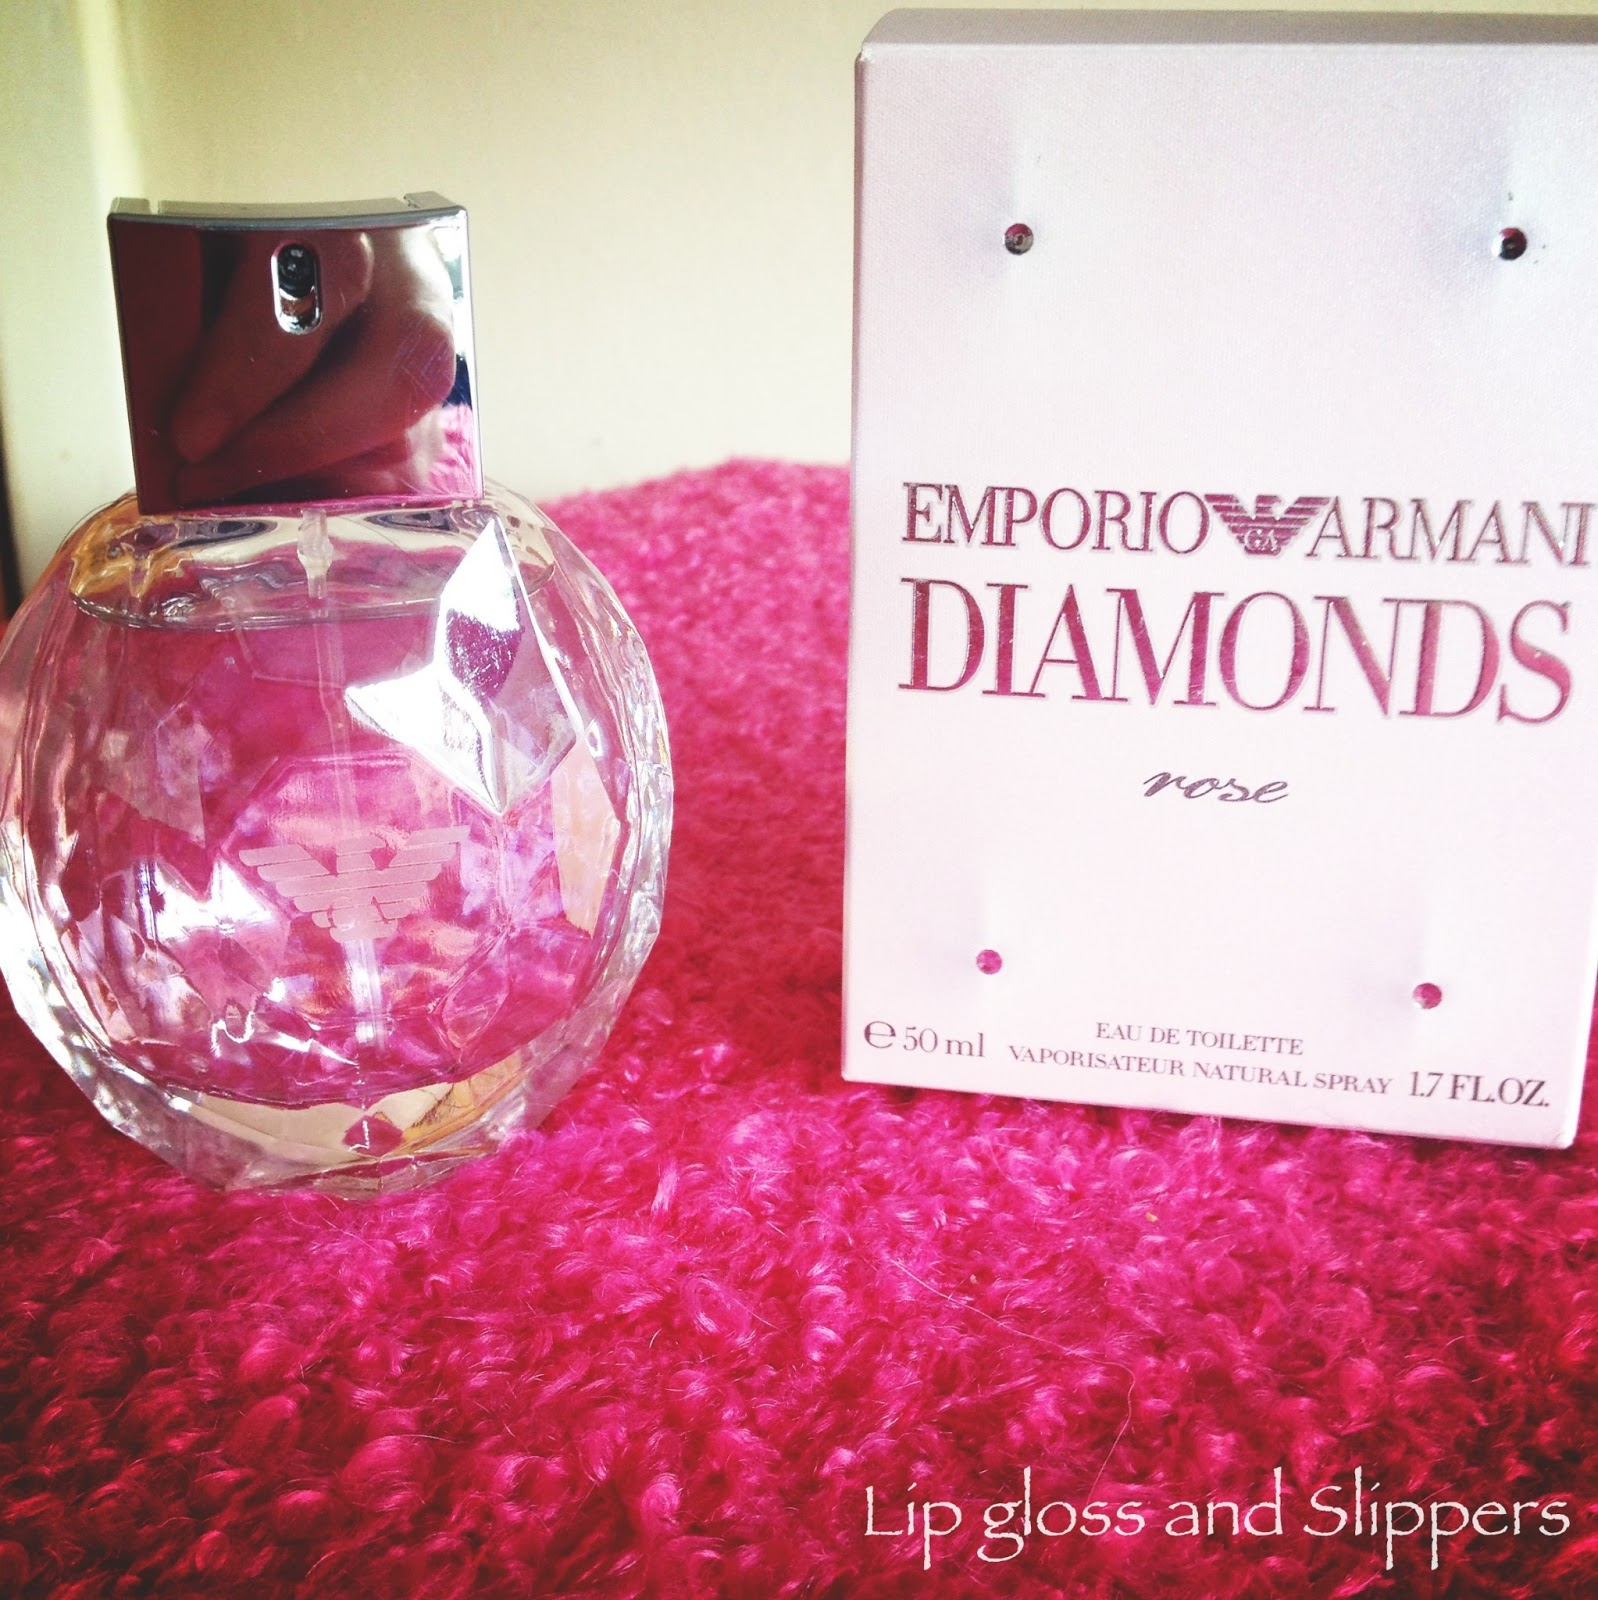 Lip Gloss And Slippers Emporio Armani Diamonds Rose Perfume Review